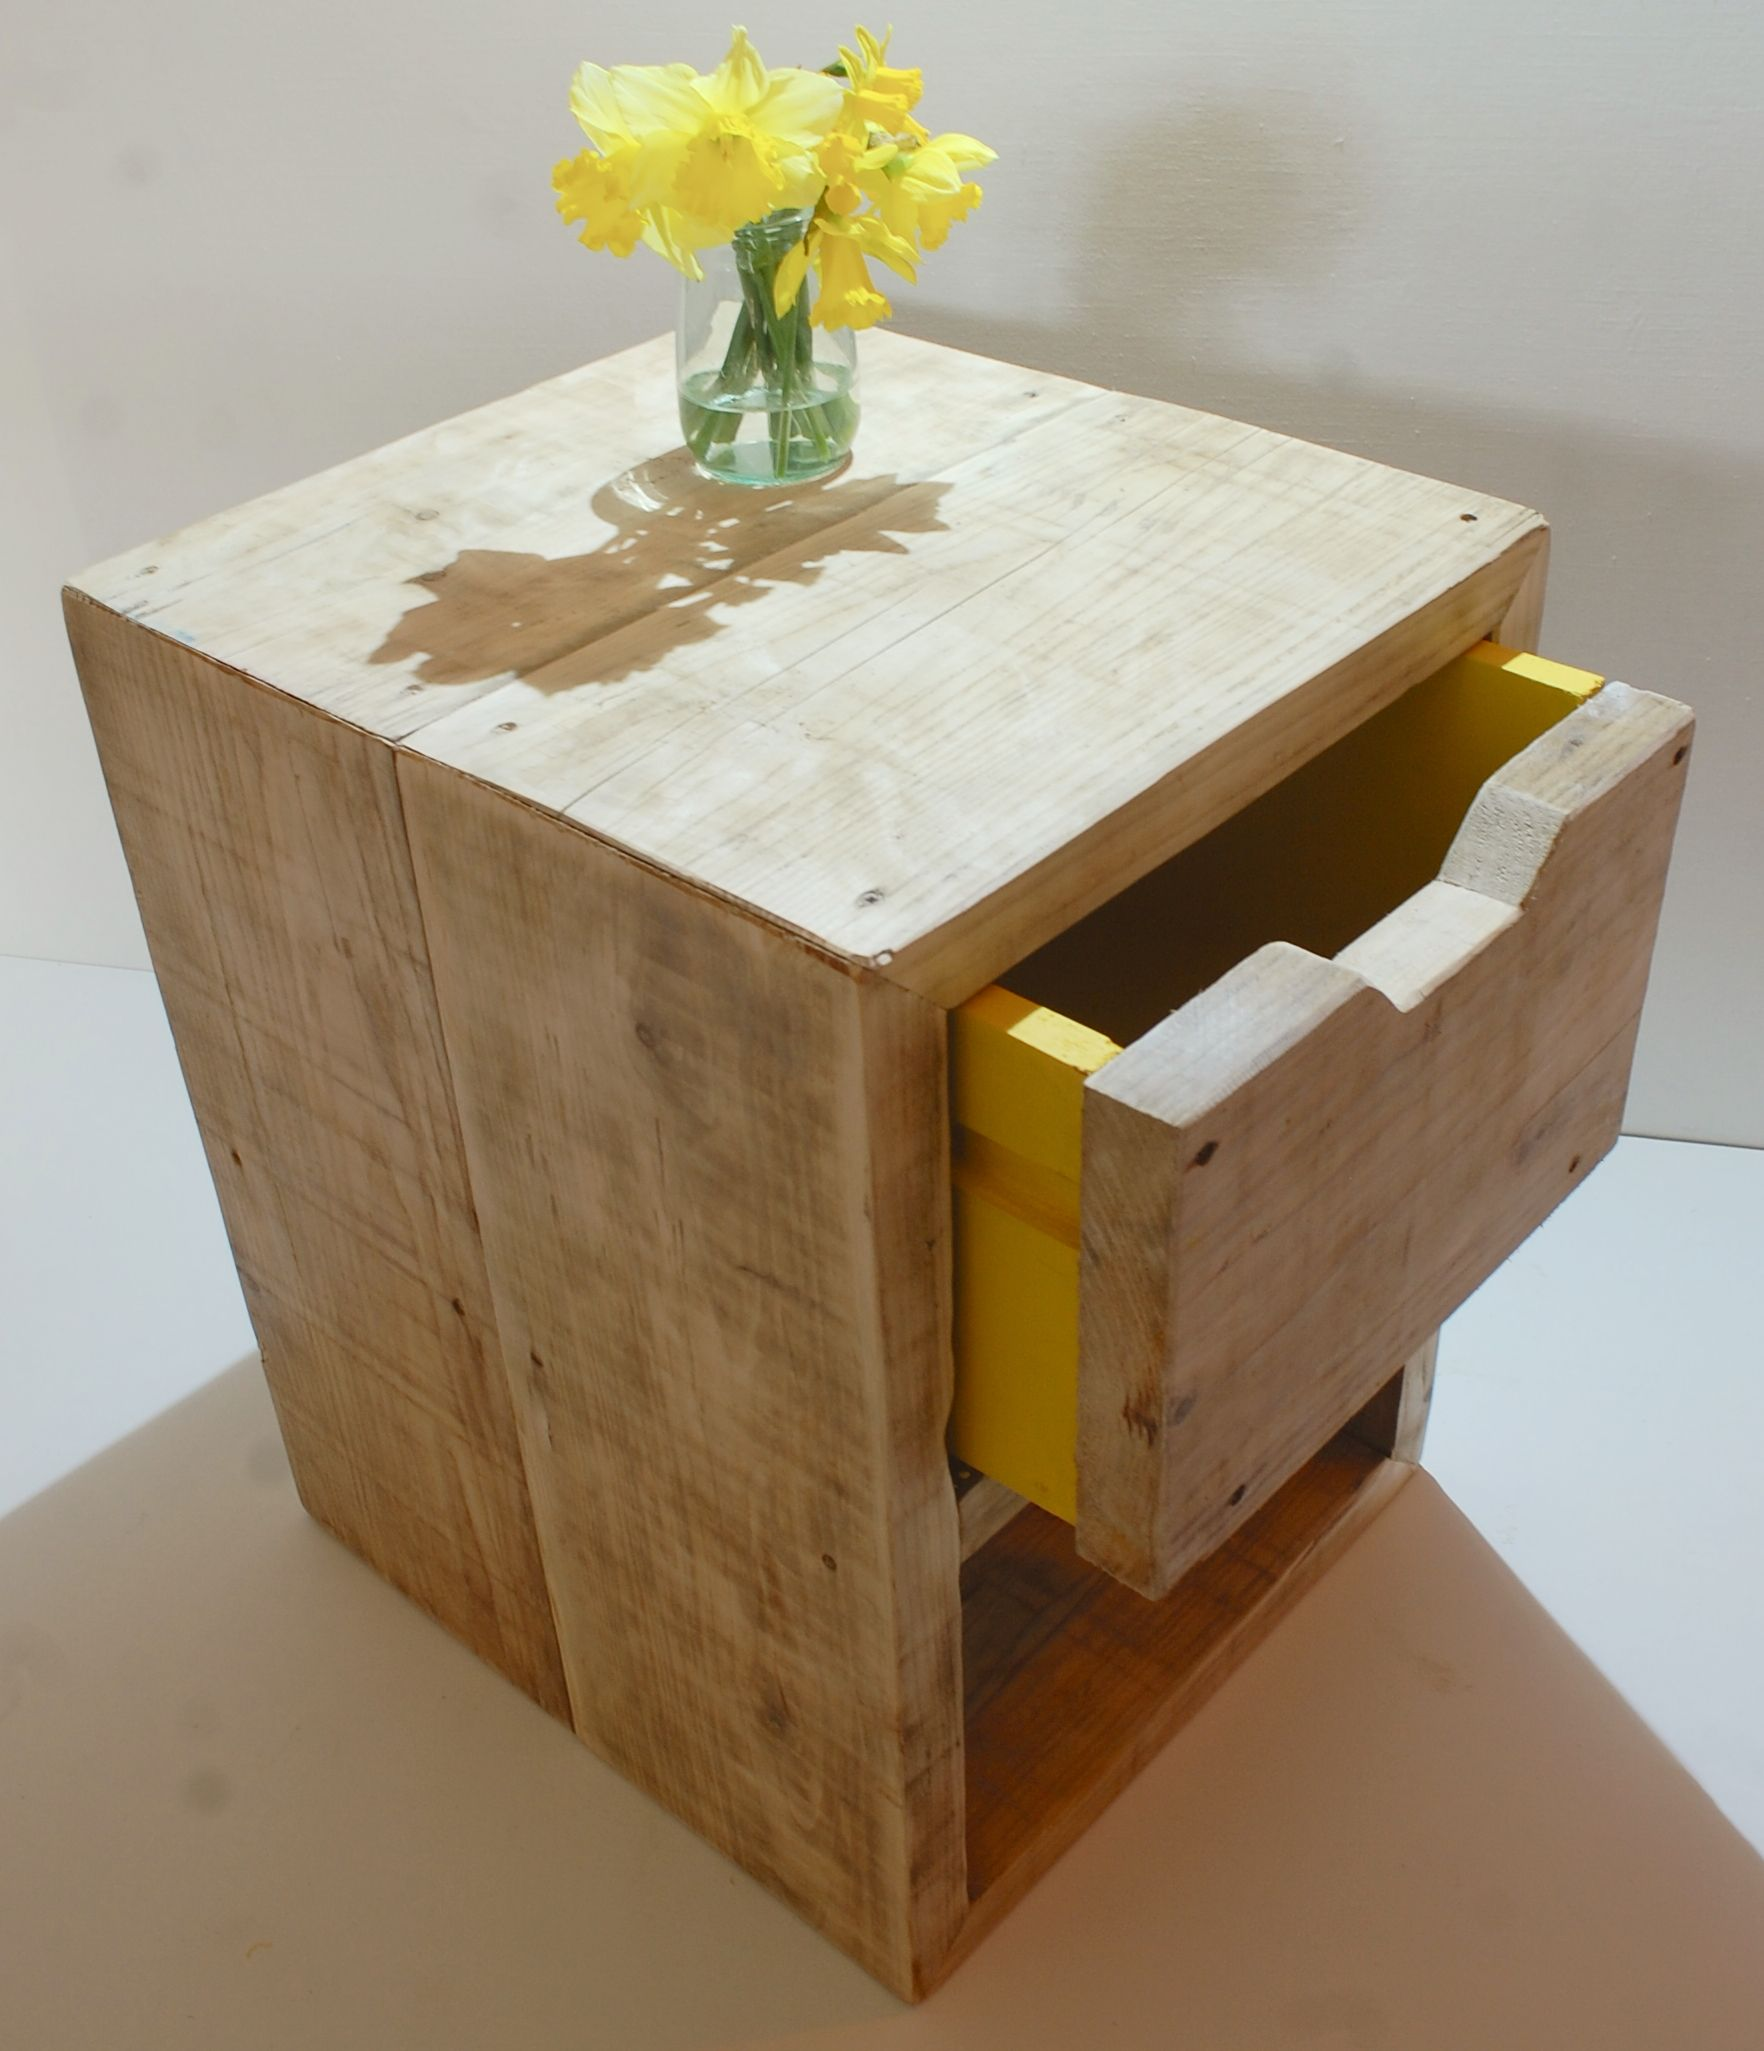 reclaimed scaffold board bedside table with yellow